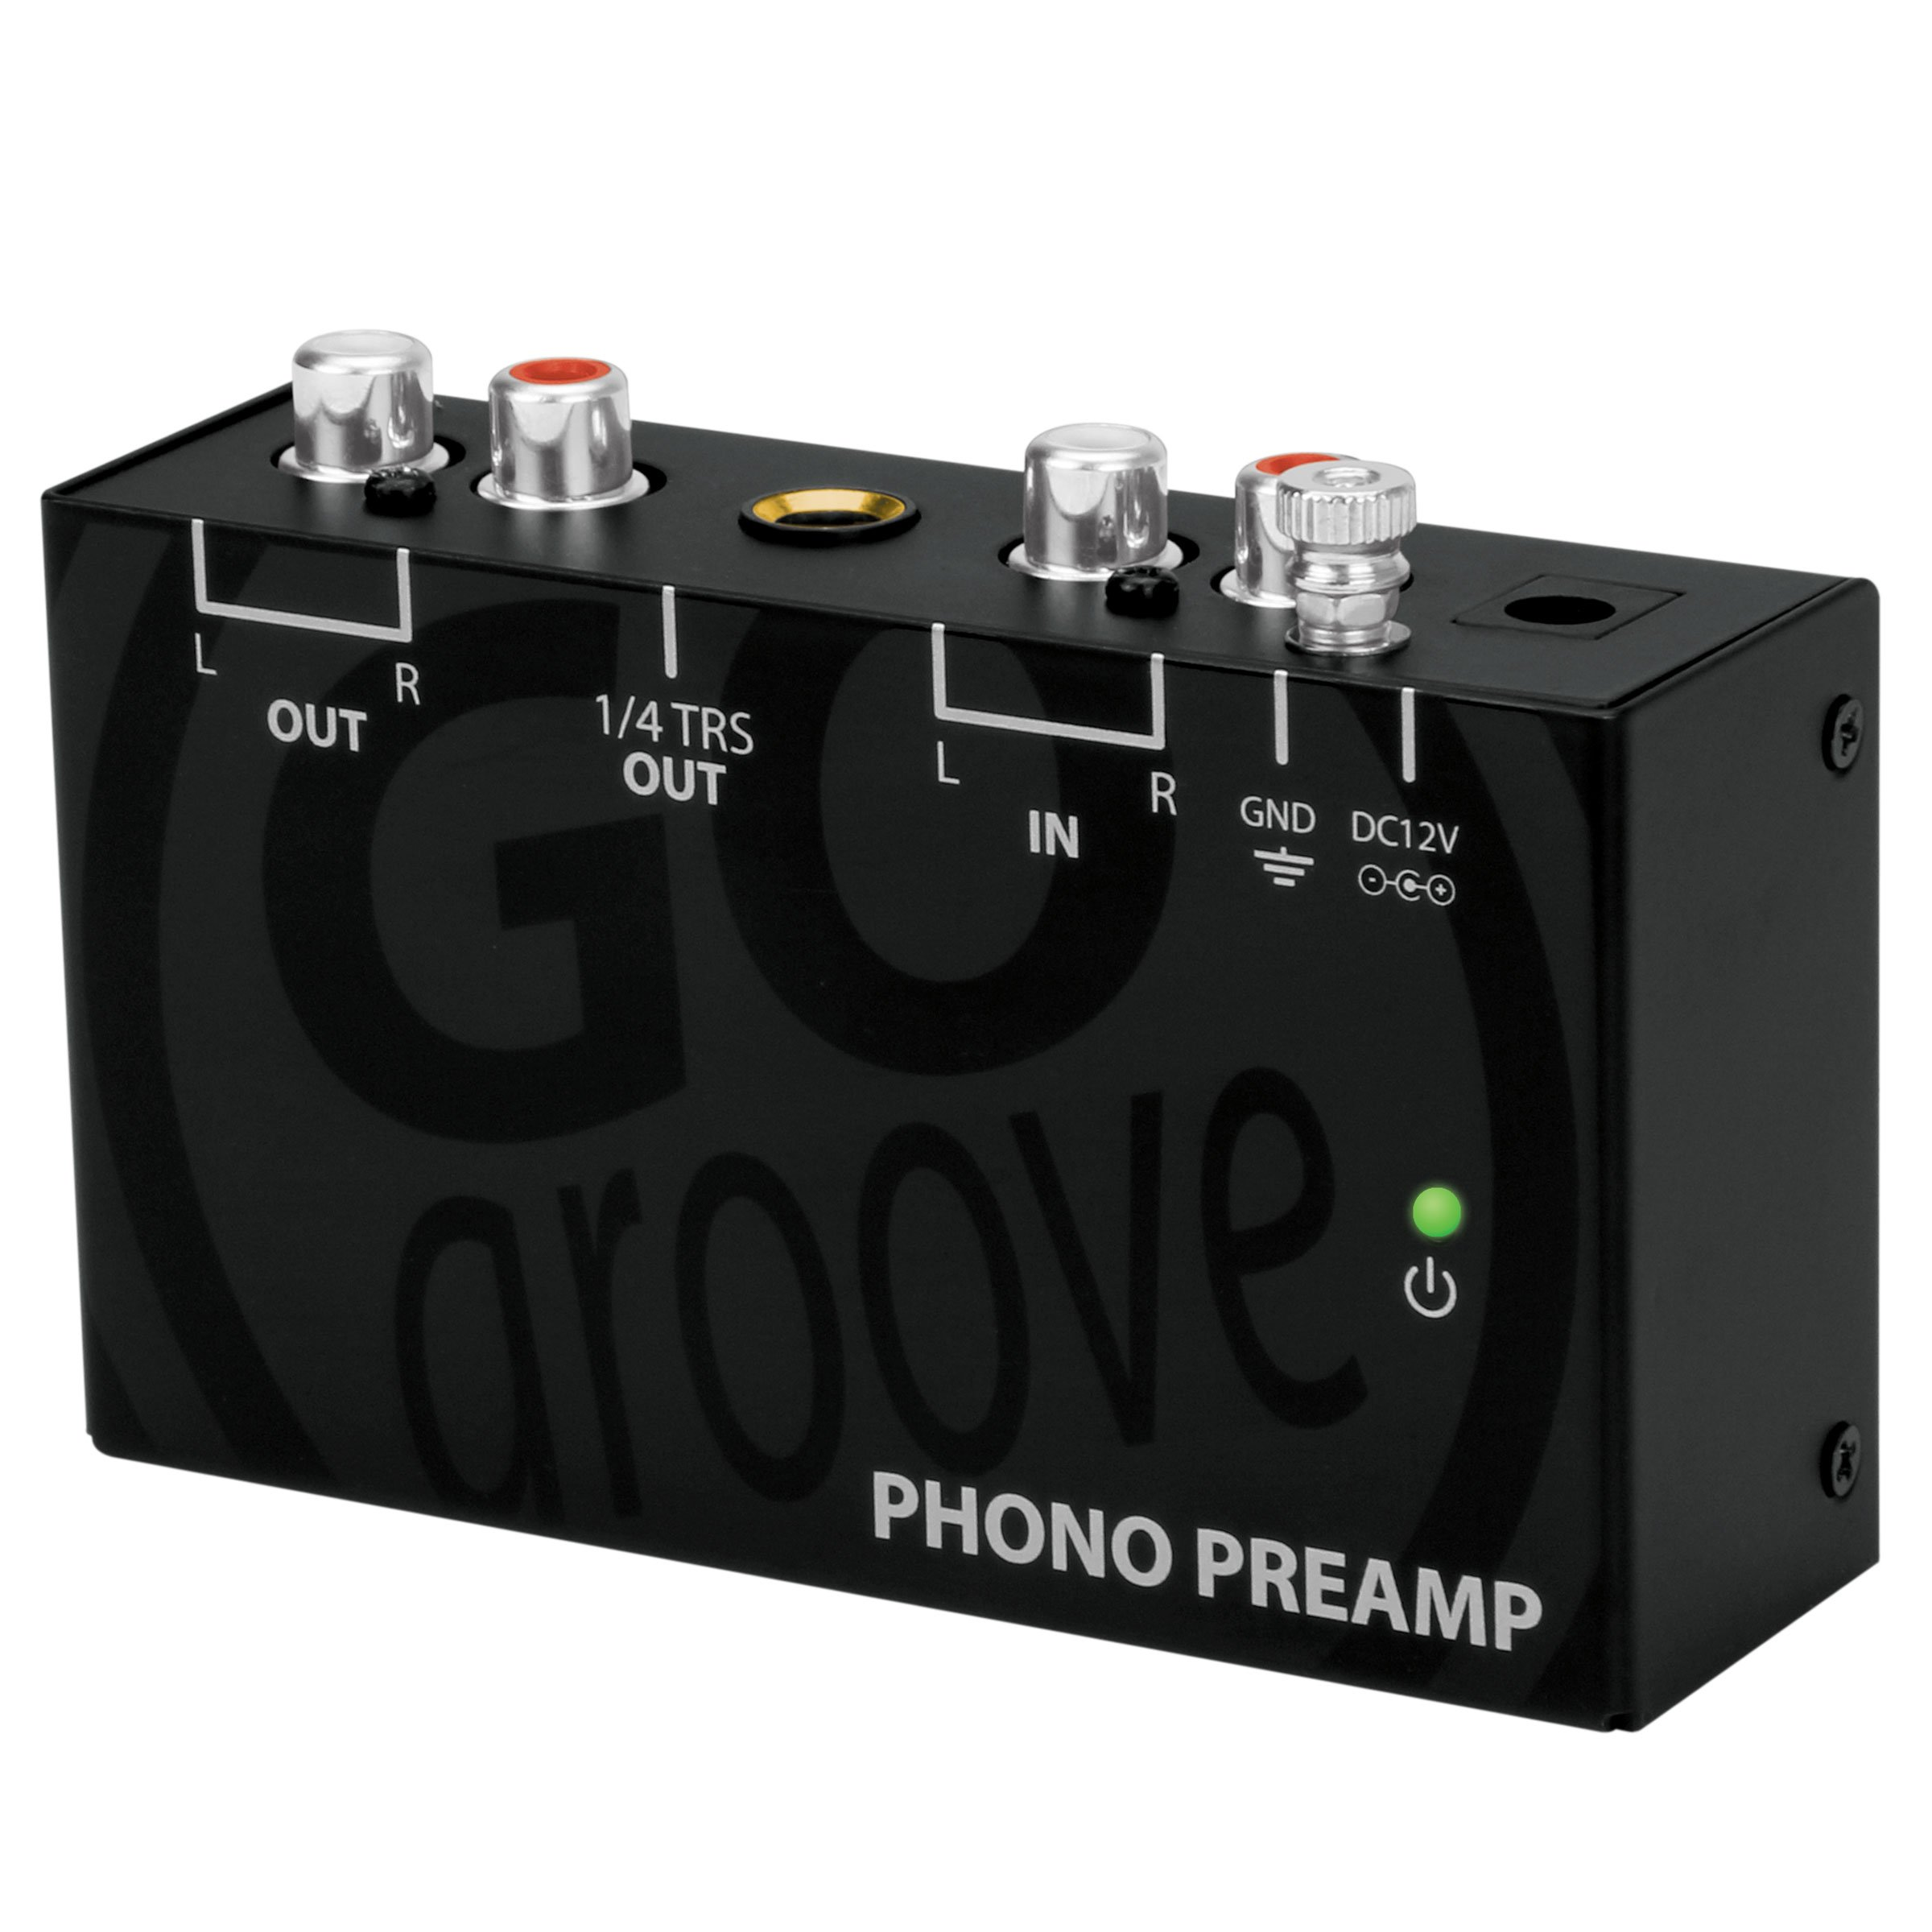 Best Rated In Audio Component Preamplifiers Helpful Customer Preamplifier Gogroove Mini Phono Turntable Preamp With 12 Volt Ac Adapter For Vinyl Record Player Works Technica Crosley Jensen Pioneer